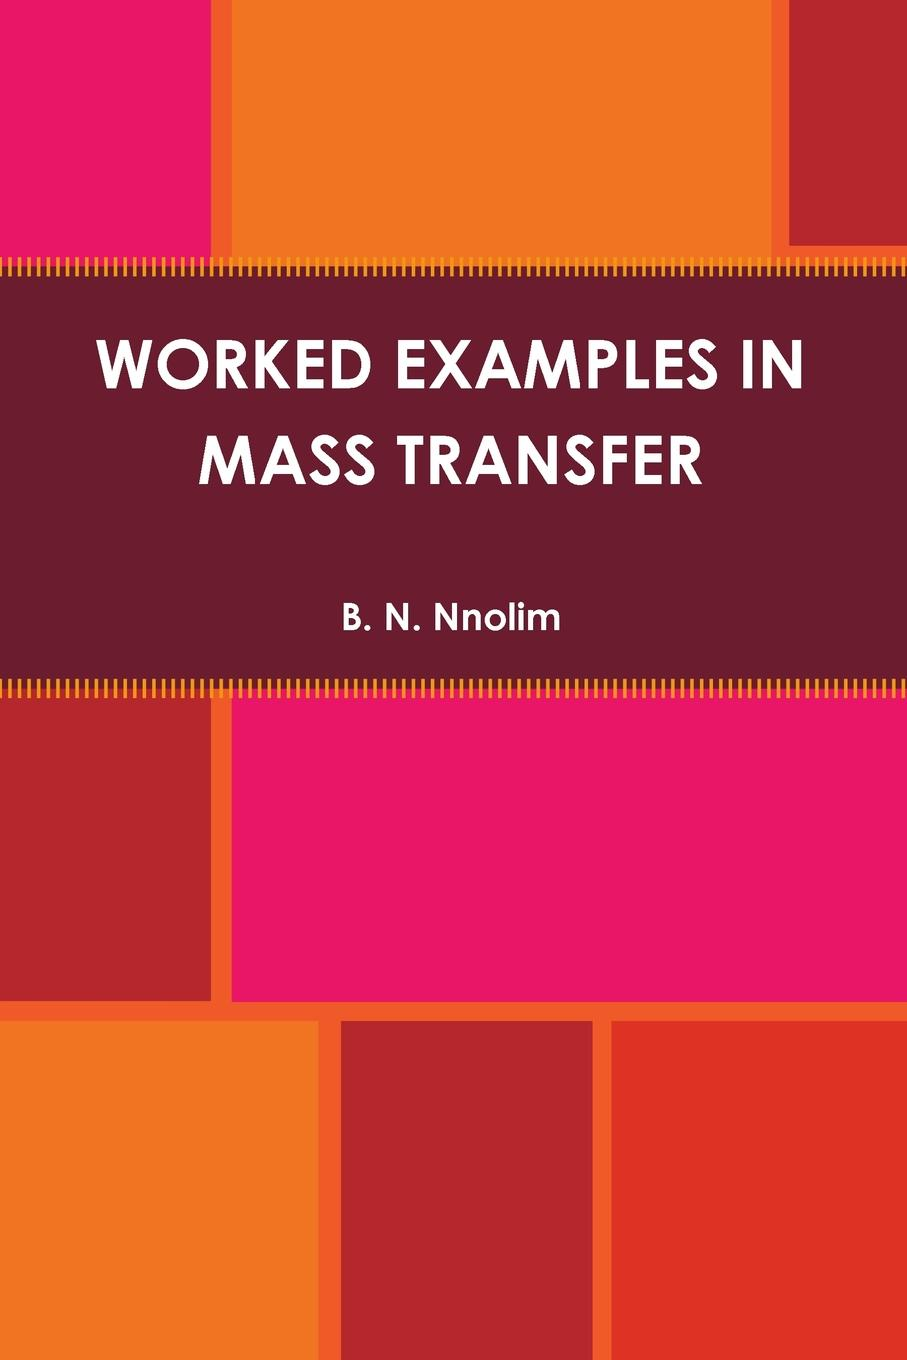 Фото - B. N. Nnolim WORKED EXAMPLES IN MASS TRANSFER theodore louis mass transfer operations for the practicing engineer